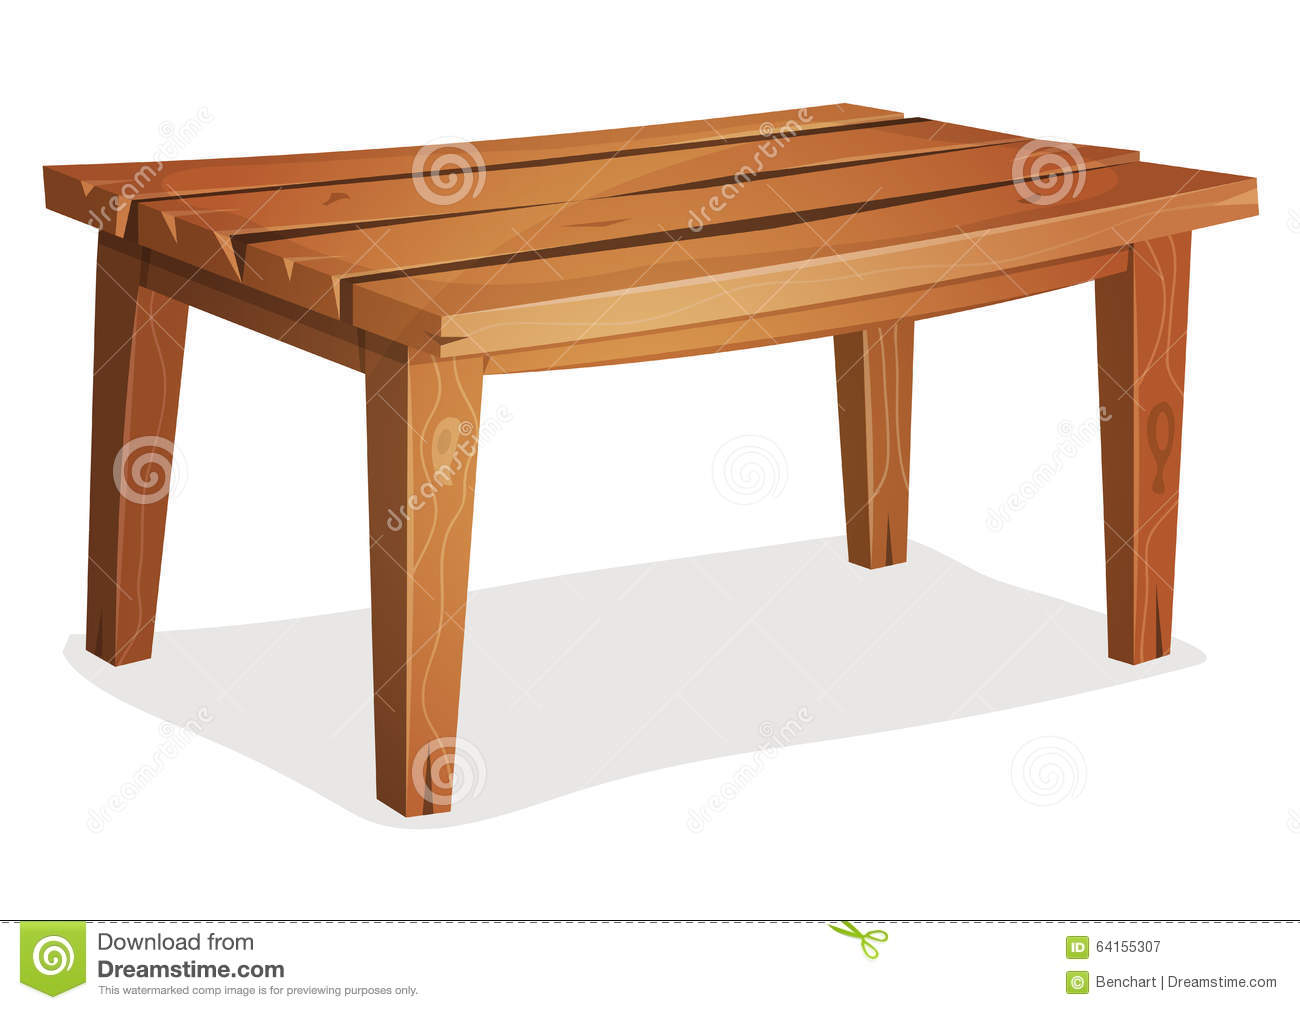 Cartoon kitchen table - Illustration Of A Cartoon Funny Wooden Kitchen Or Garden Table